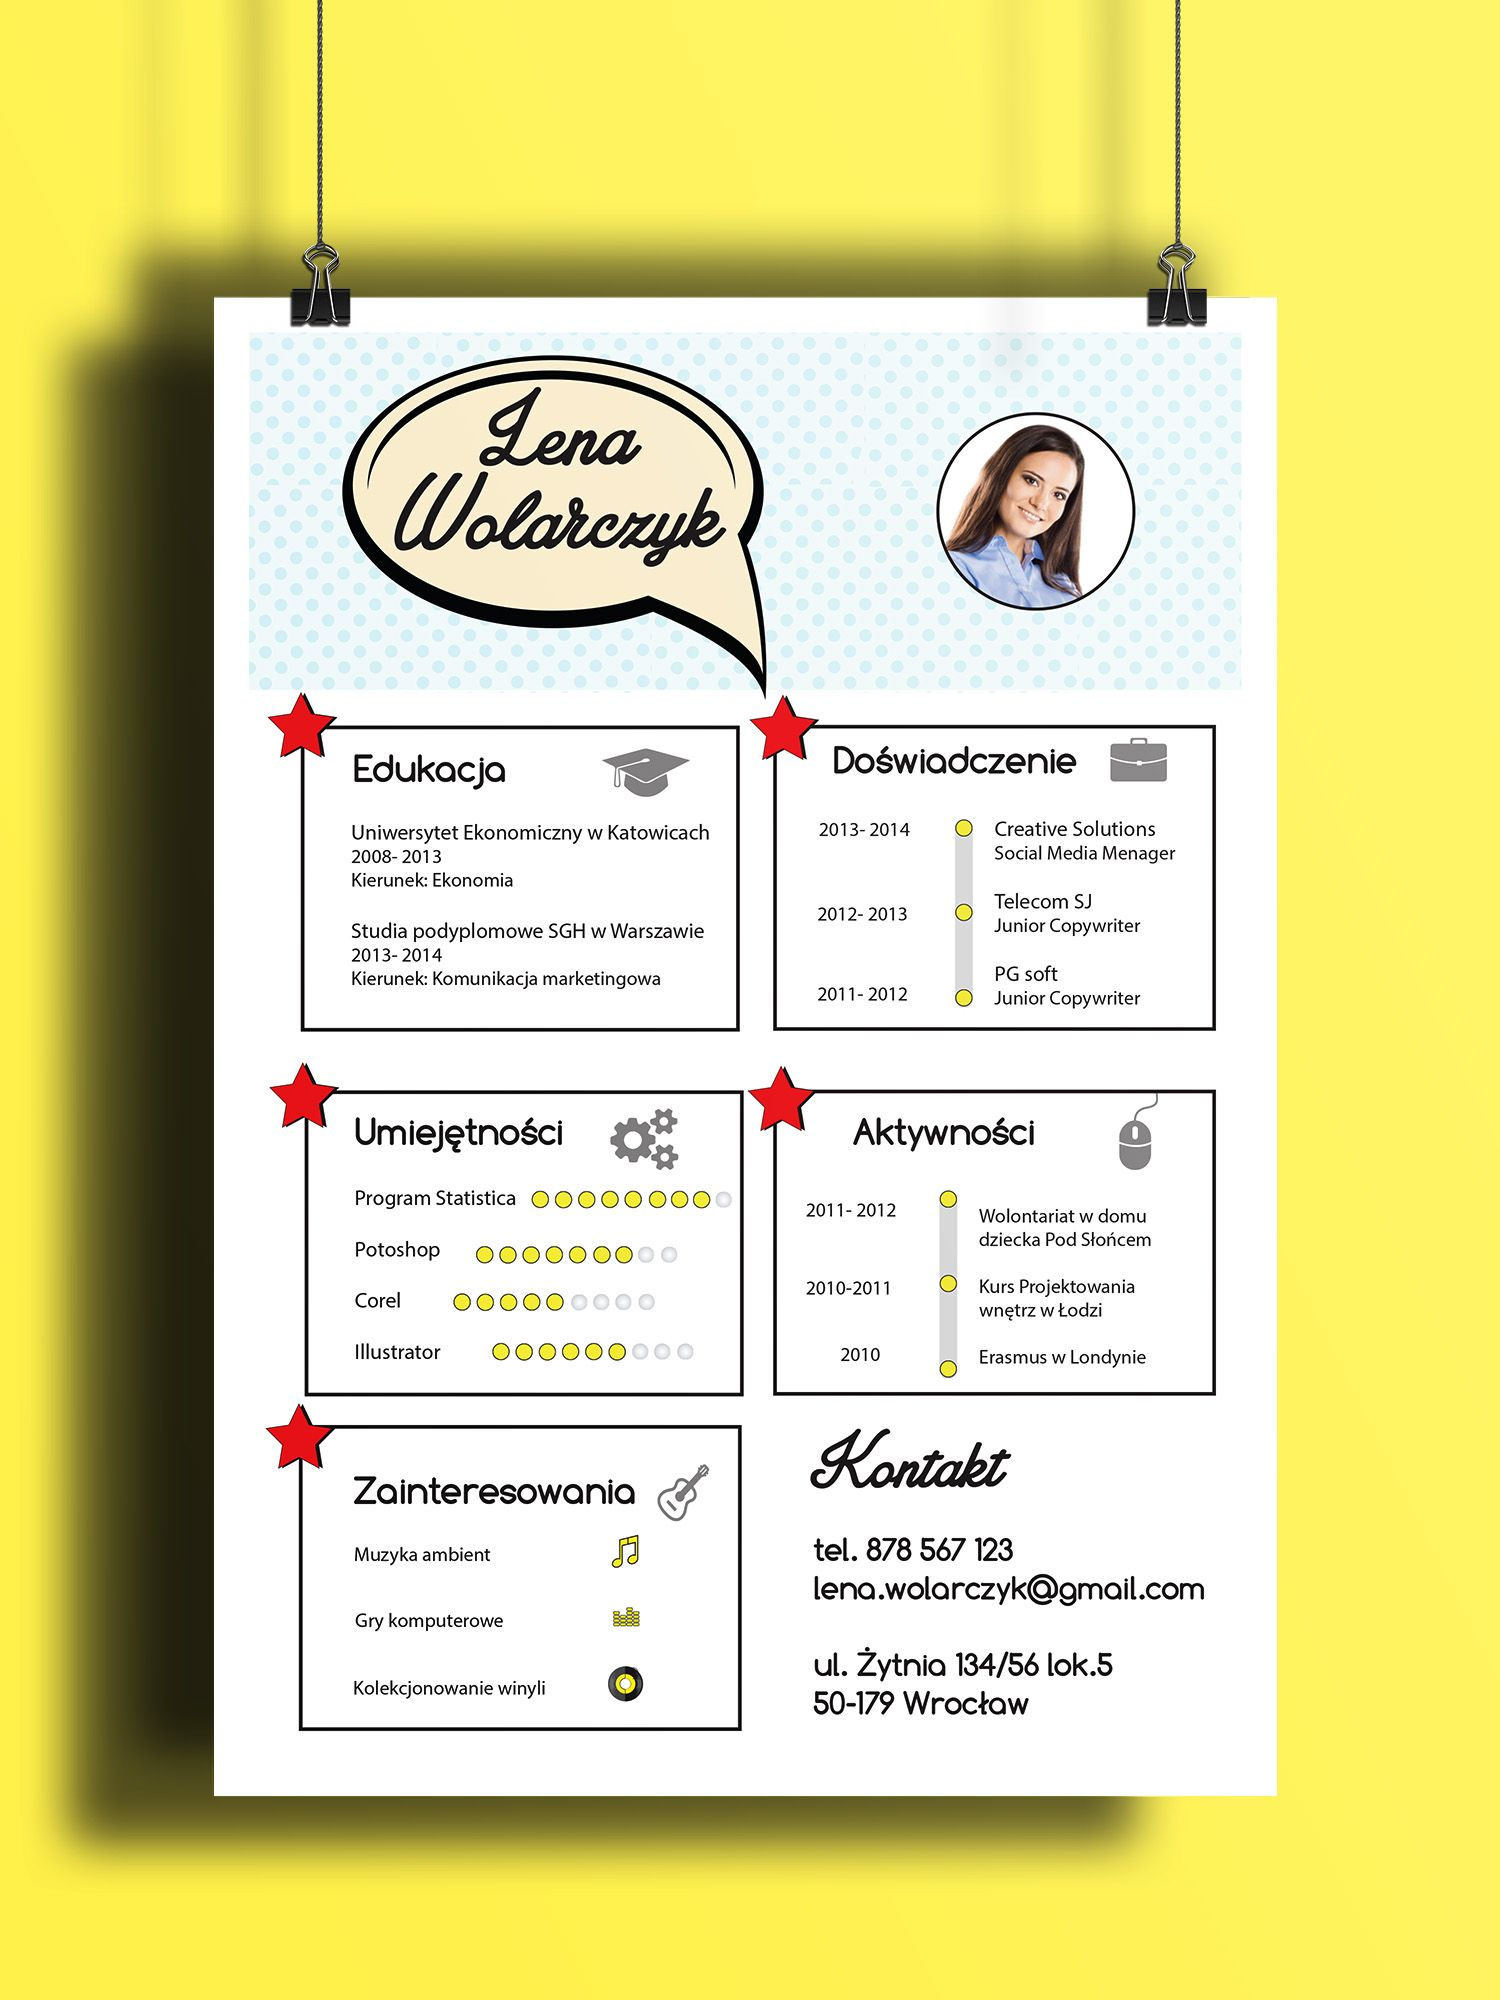 Pop art resume design. Find CV design on Etsy ♥ | Nifty designs ...